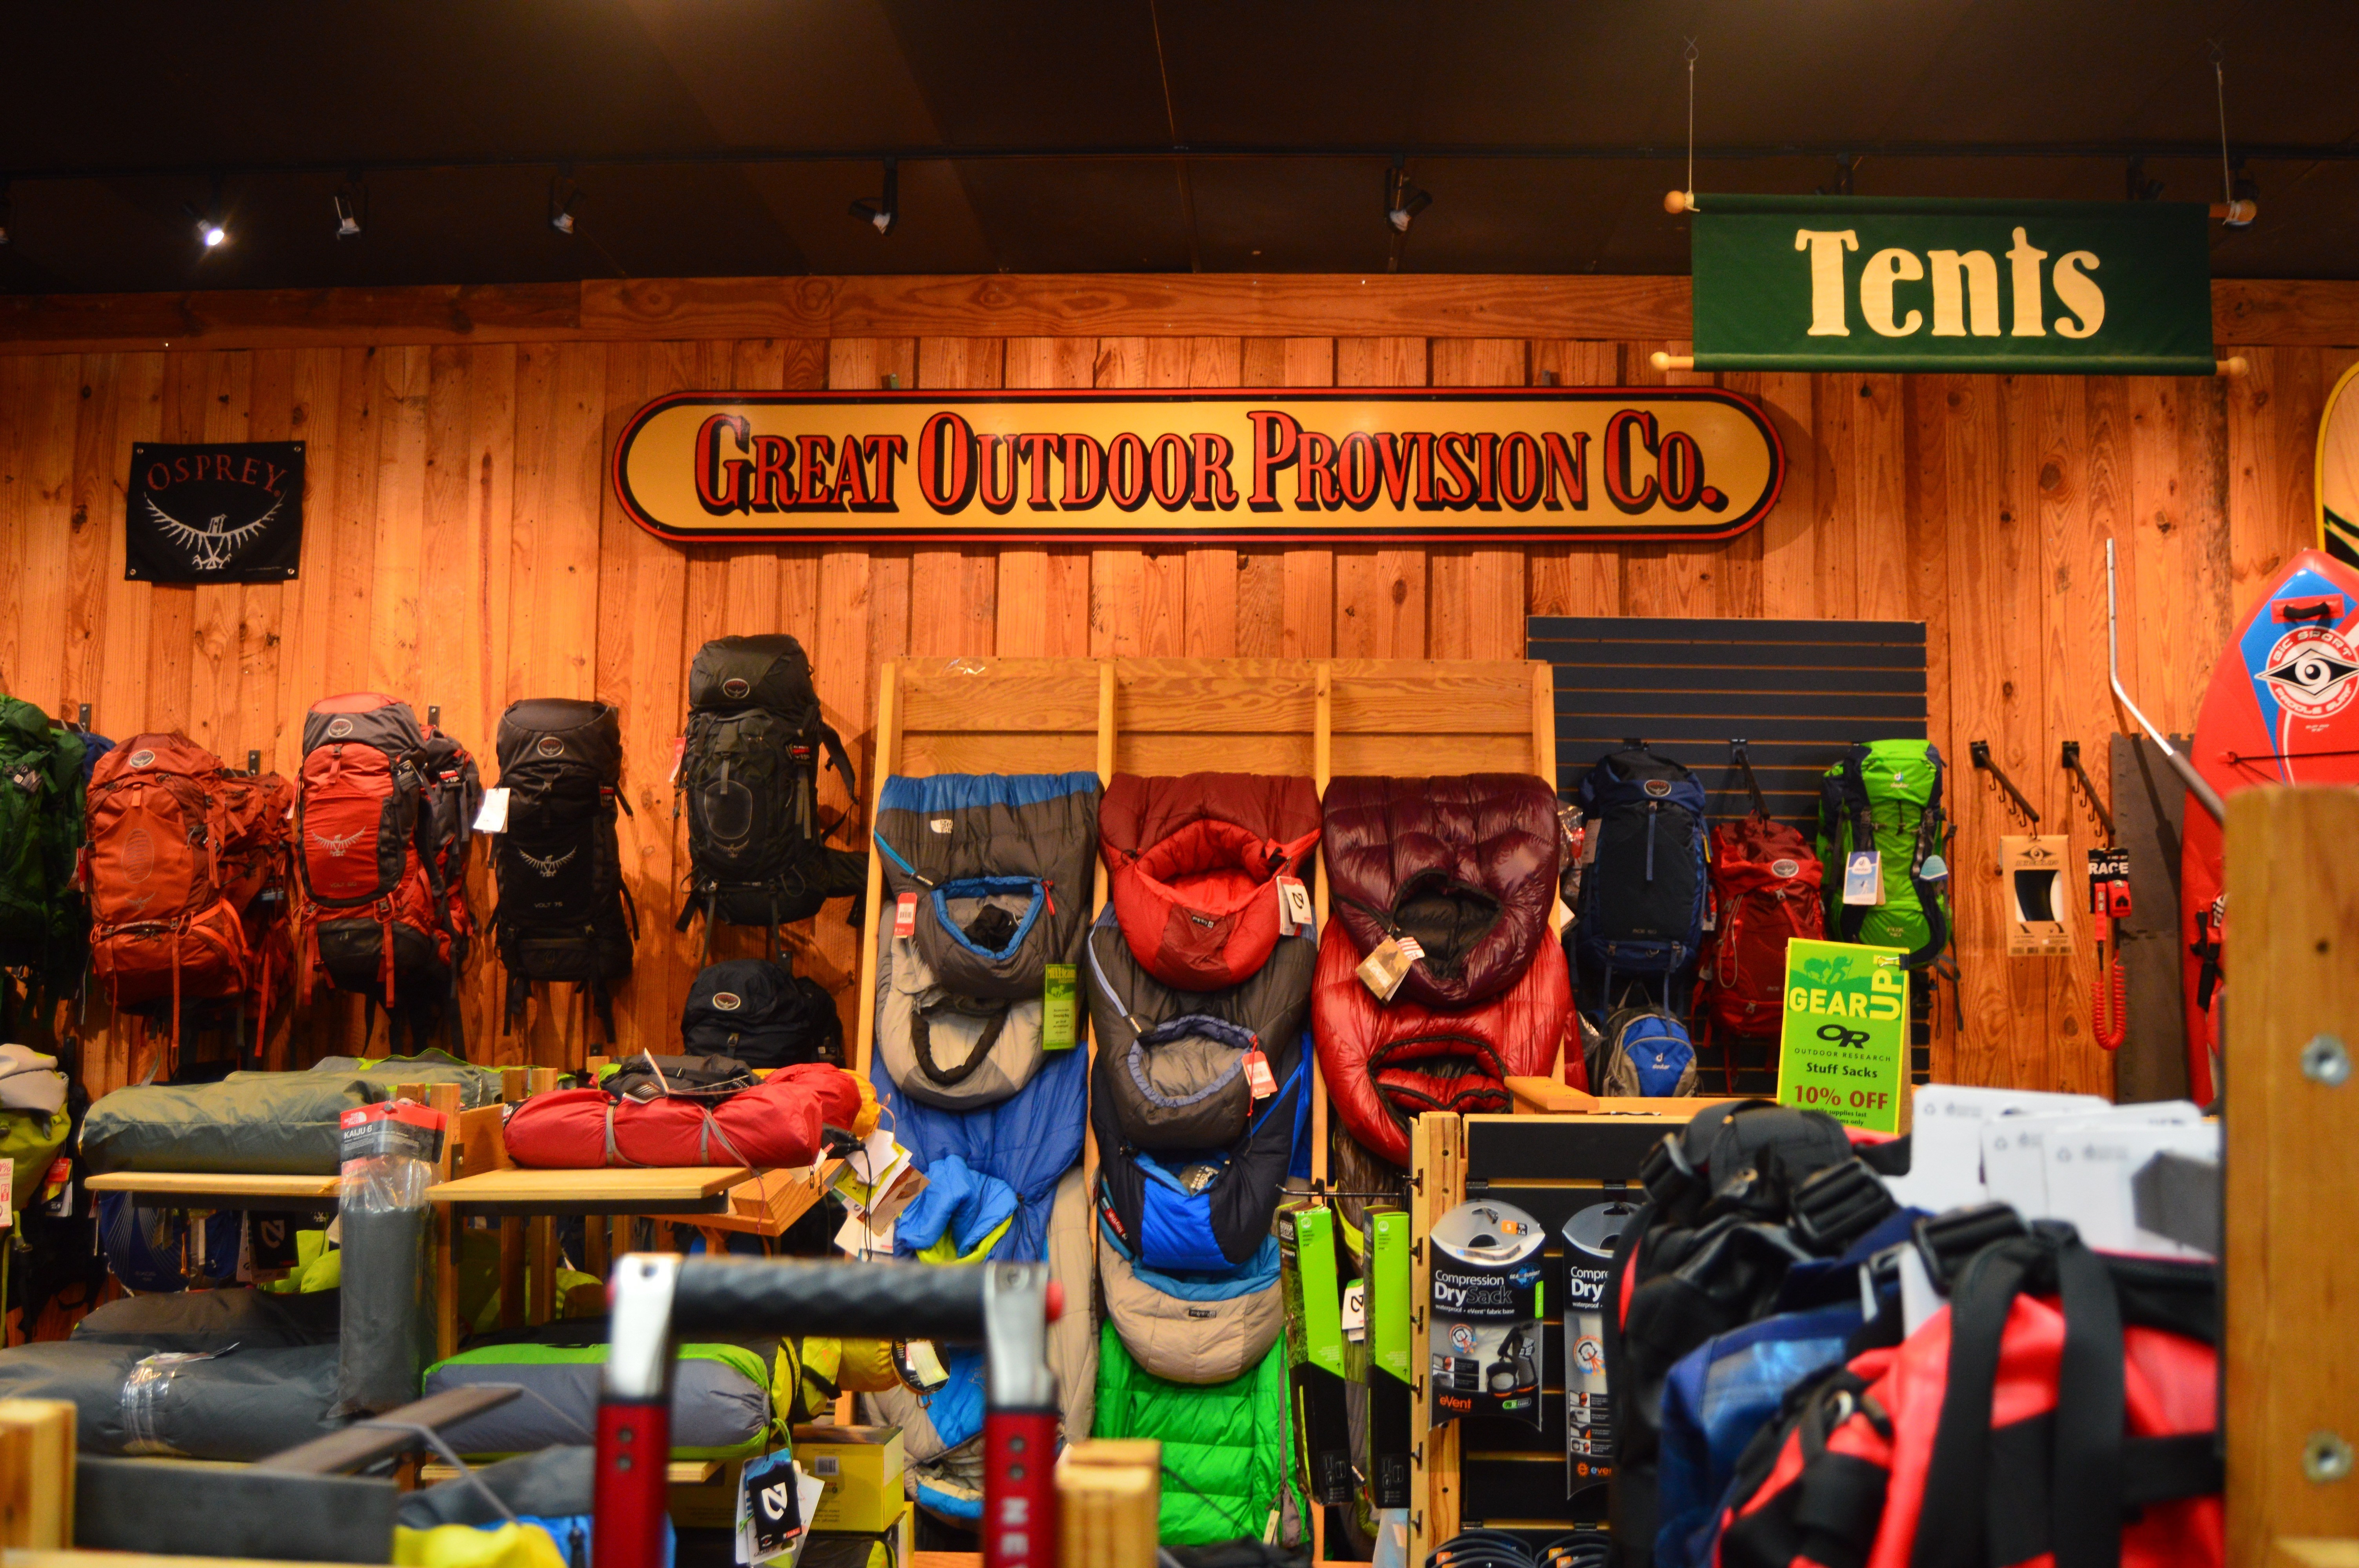 Best ideas about Great Outdoor Provision Co . Save or Pin Meet Our Sponsors Great Outdoor Provision Co Sir Now.